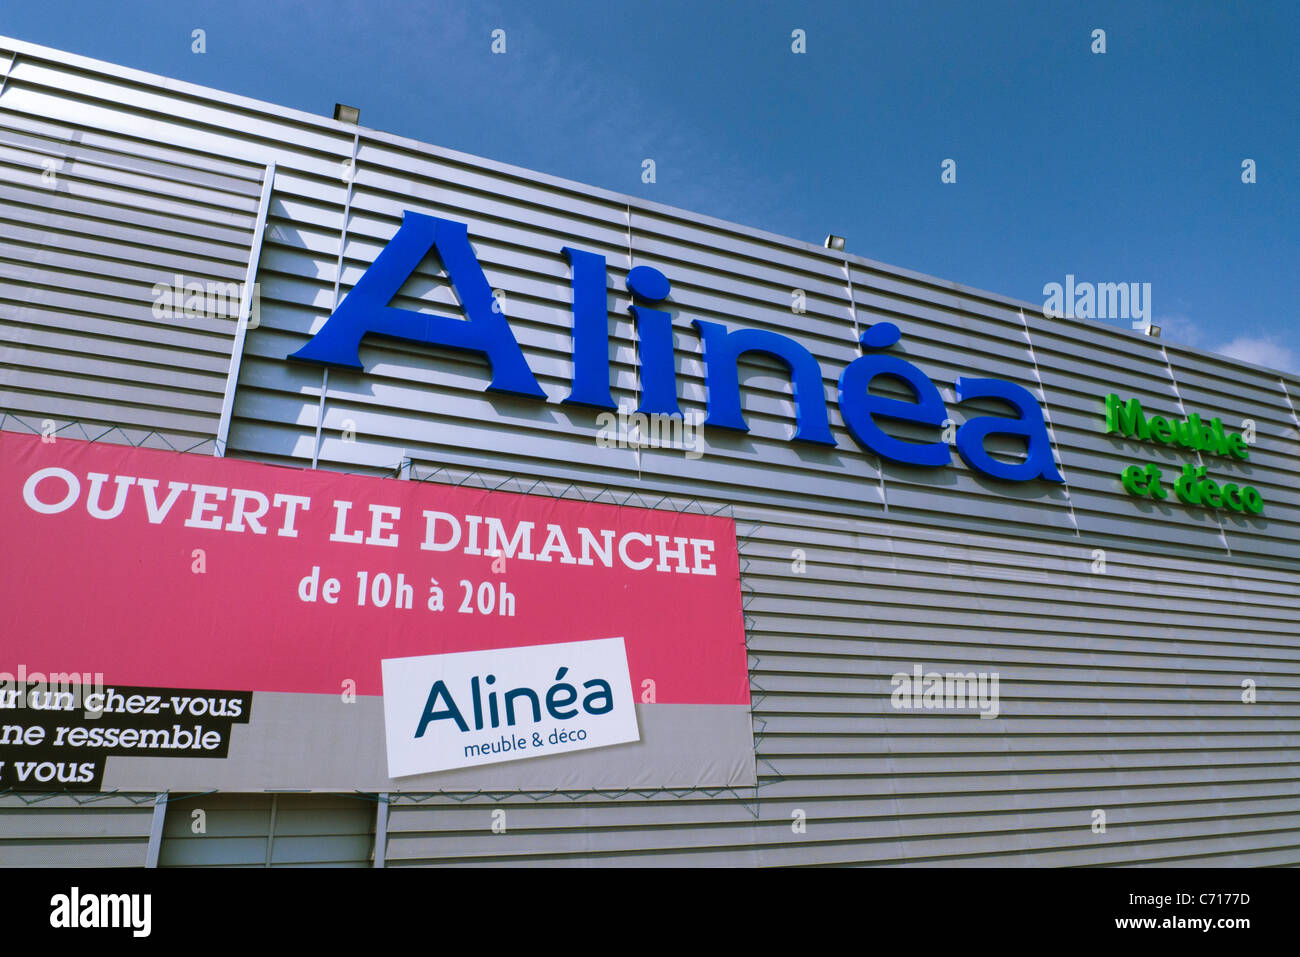 alinea french home decor store at herblay ile de france france stock photo royalty free image. Black Bedroom Furniture Sets. Home Design Ideas